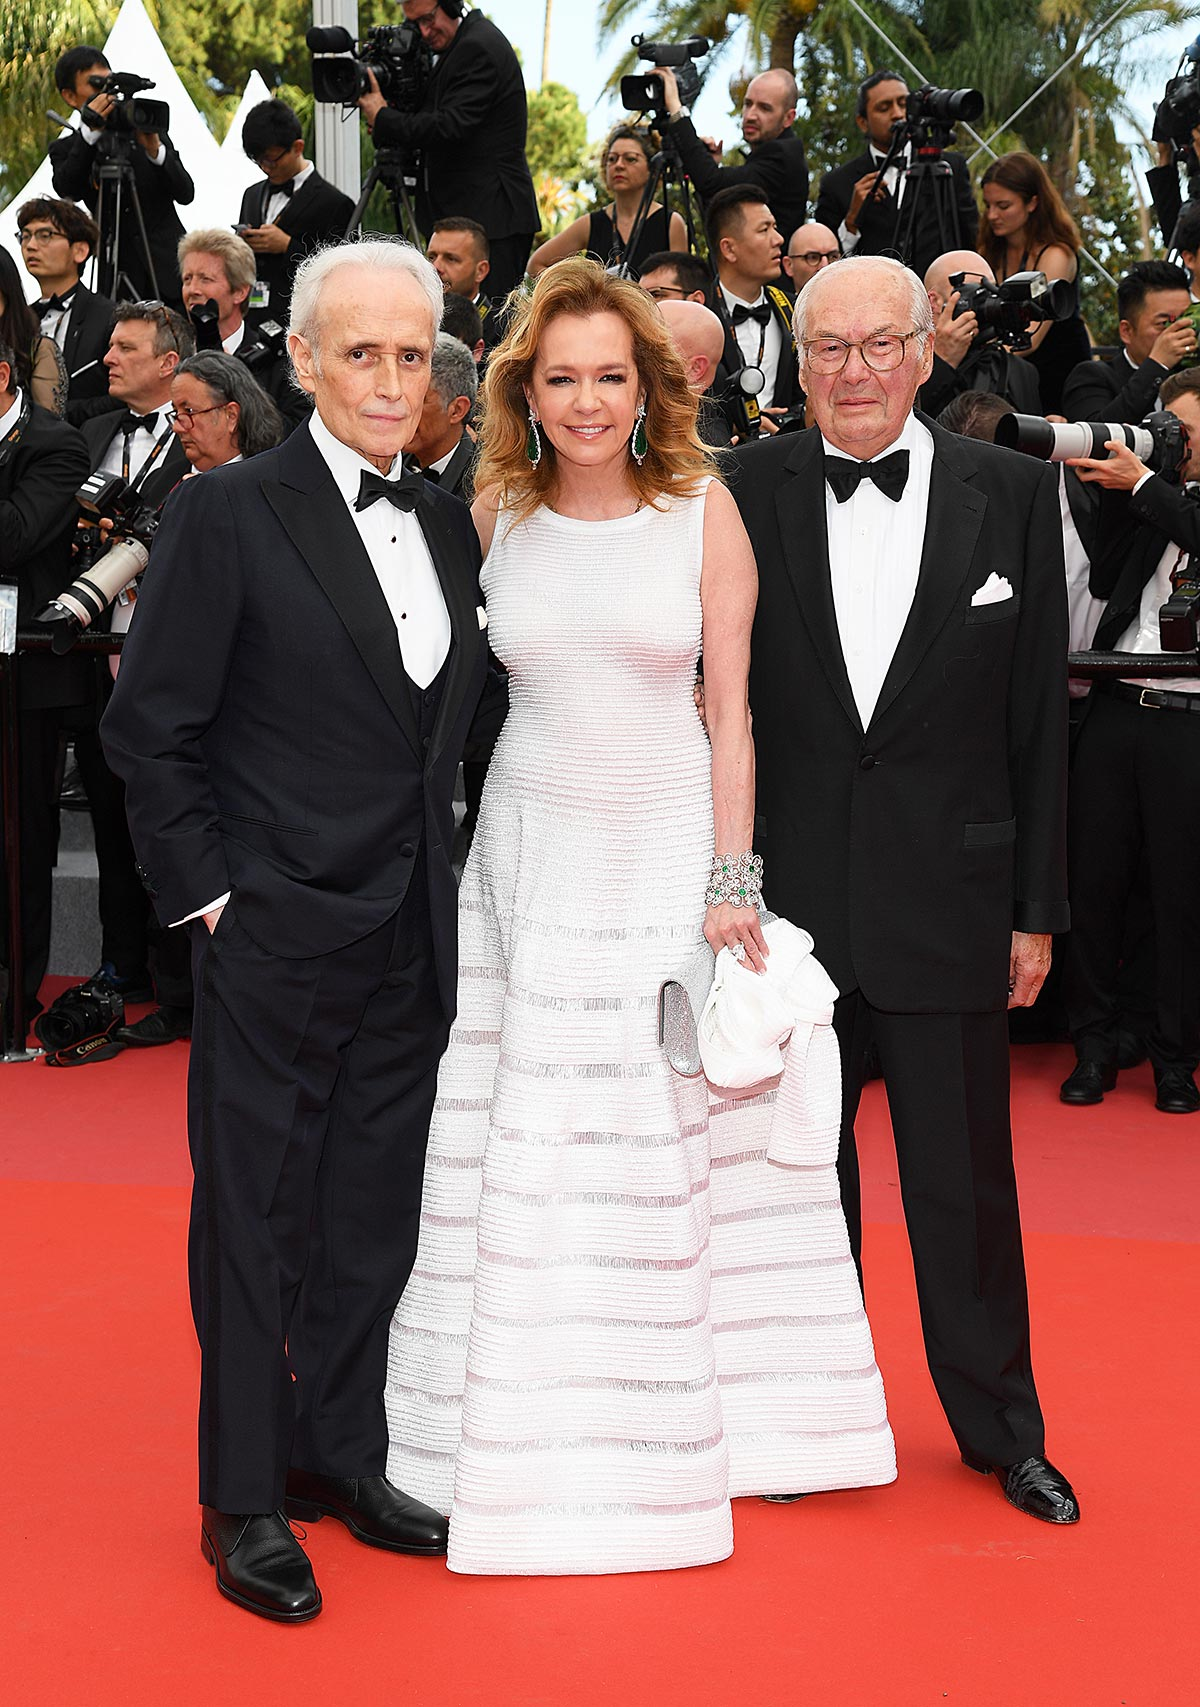 Cannes 2018 - Opening Ceremony - Caroline Scheufele - Hair and makeup Massimo Serini